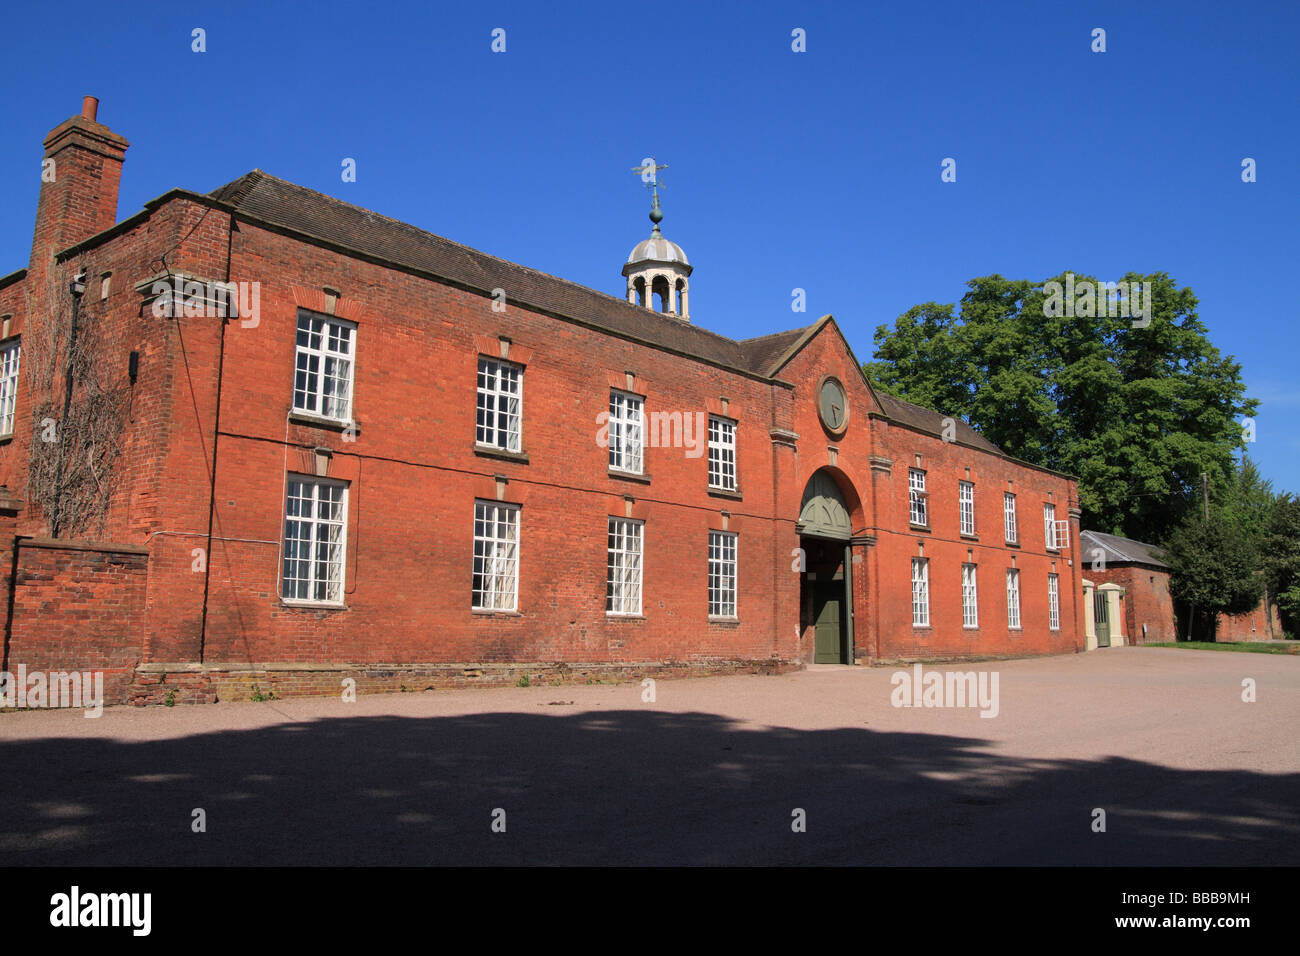 Enville Hall Coach House, Enville, Staffordshire, England - Stock Image